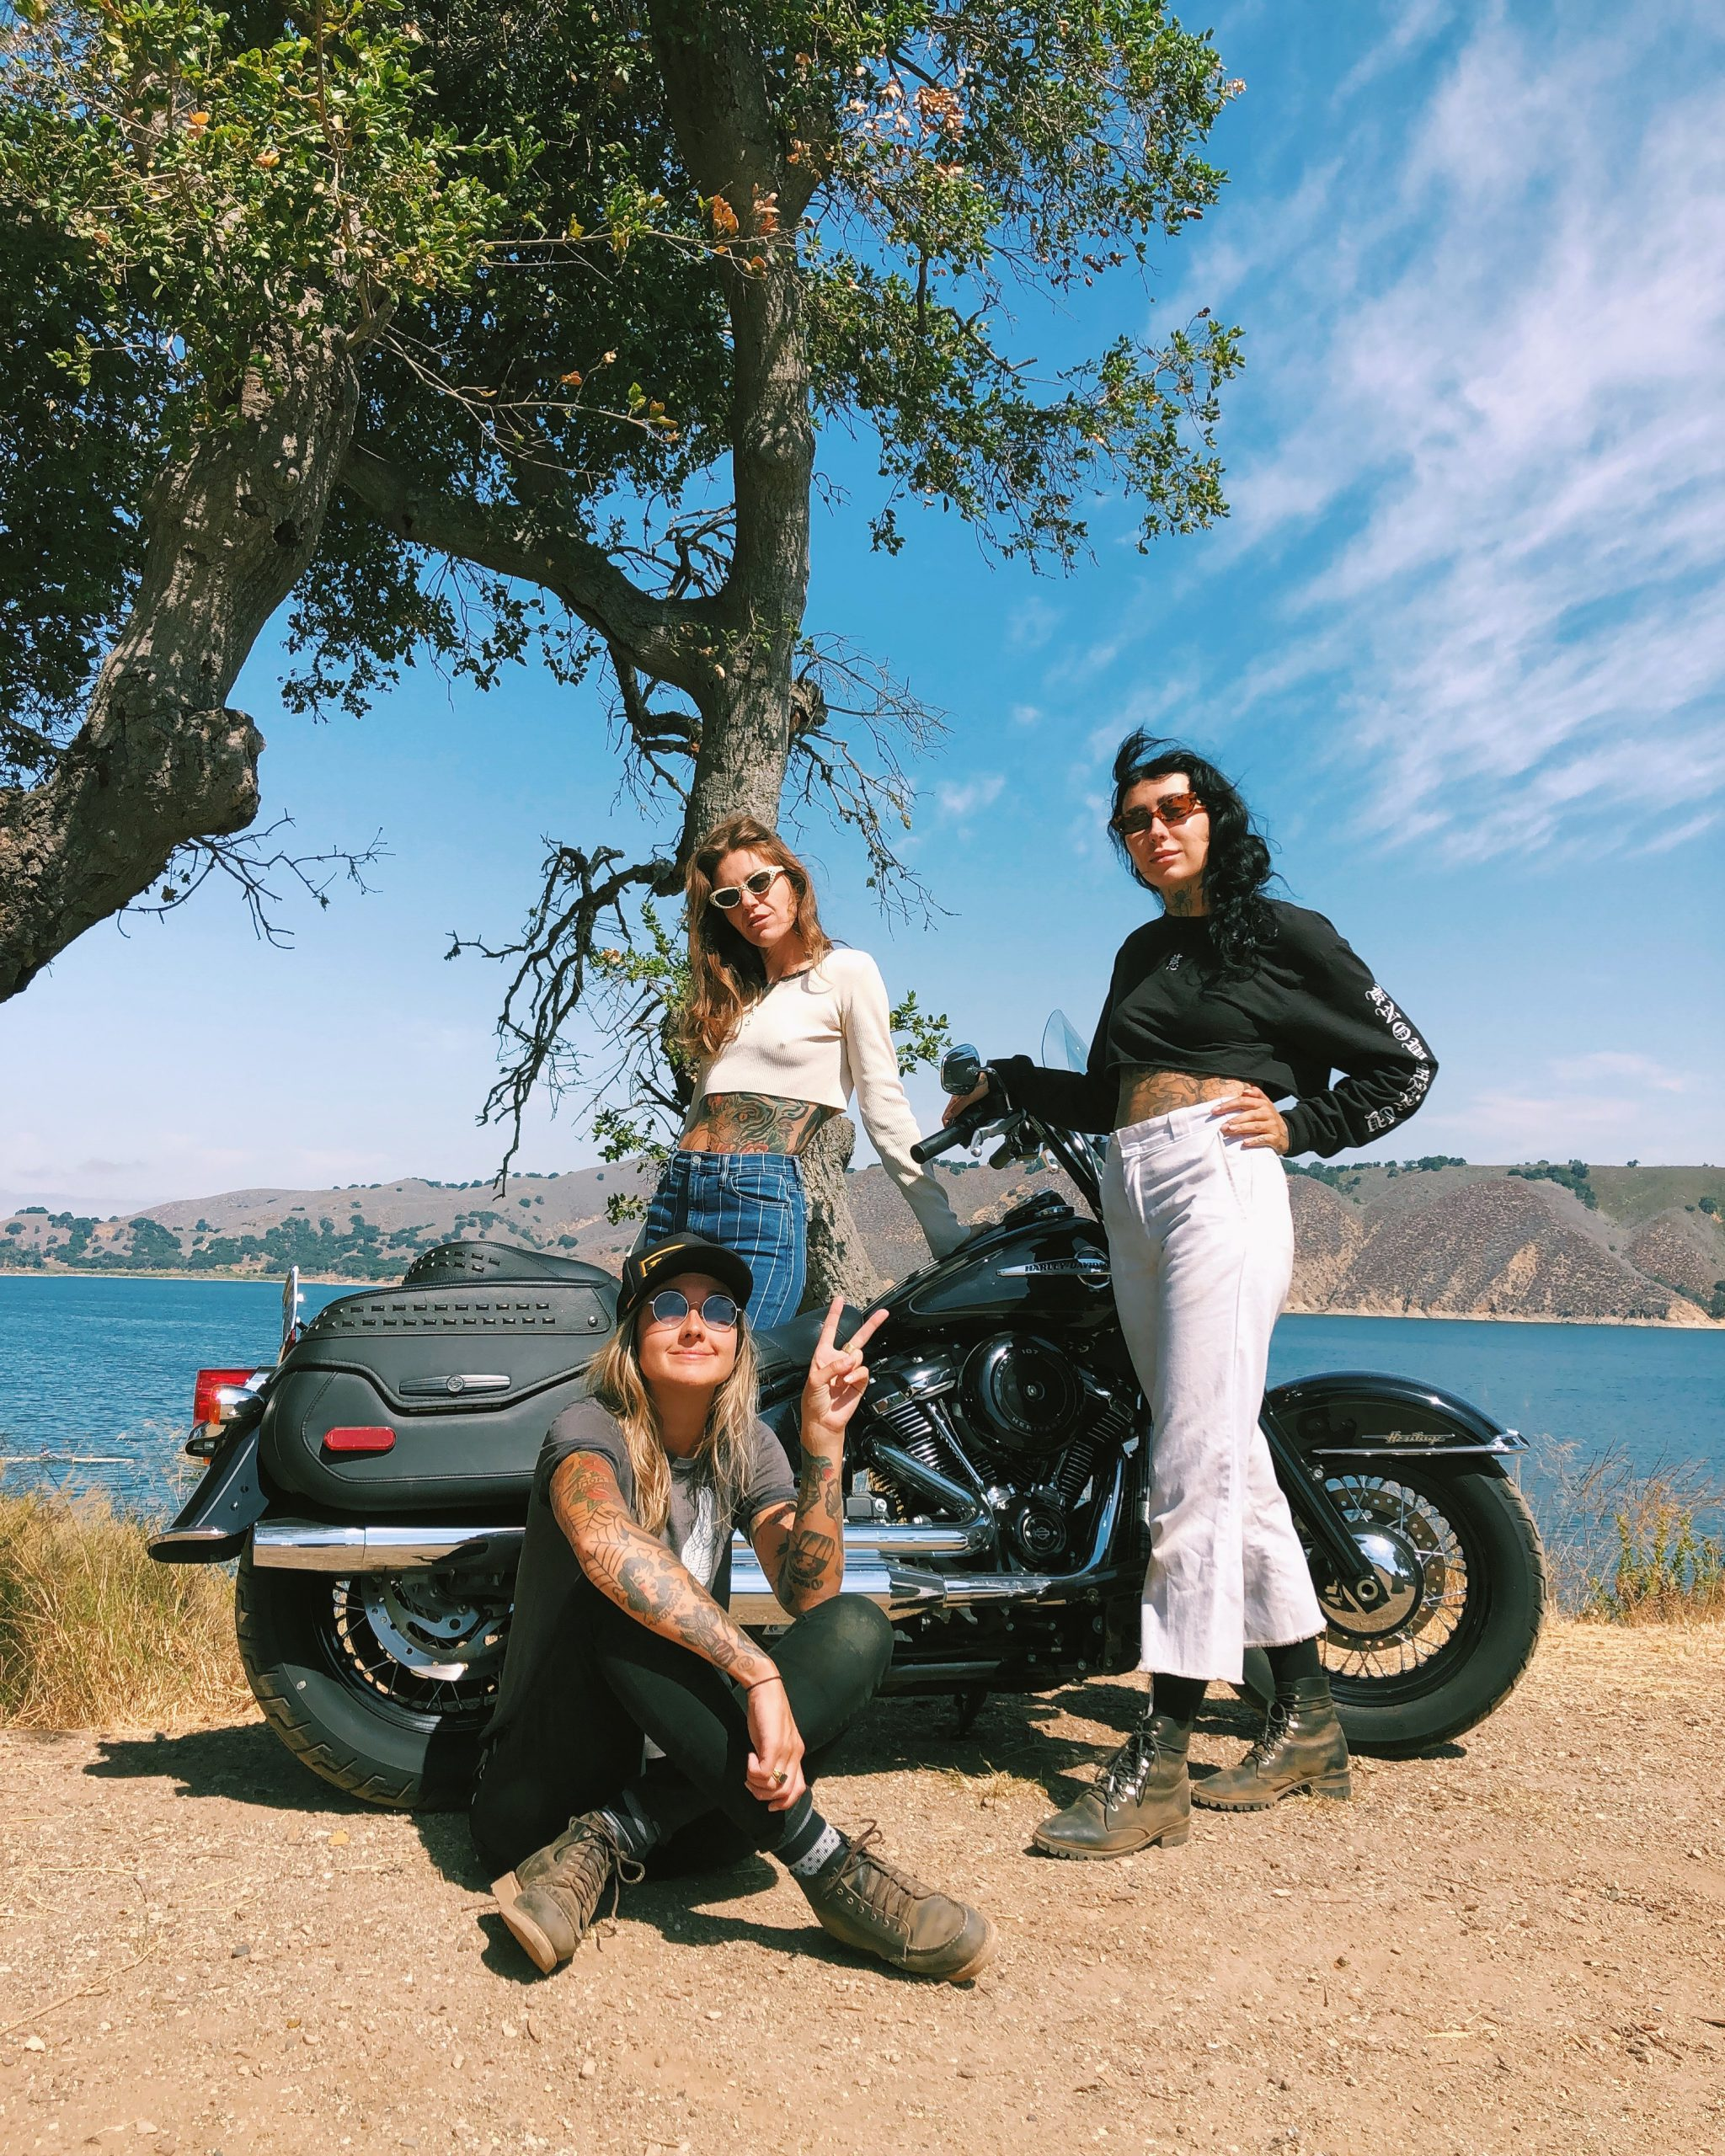 Our Kind of Girls Night – An Overnight Ride to Lake Cachuma, CA